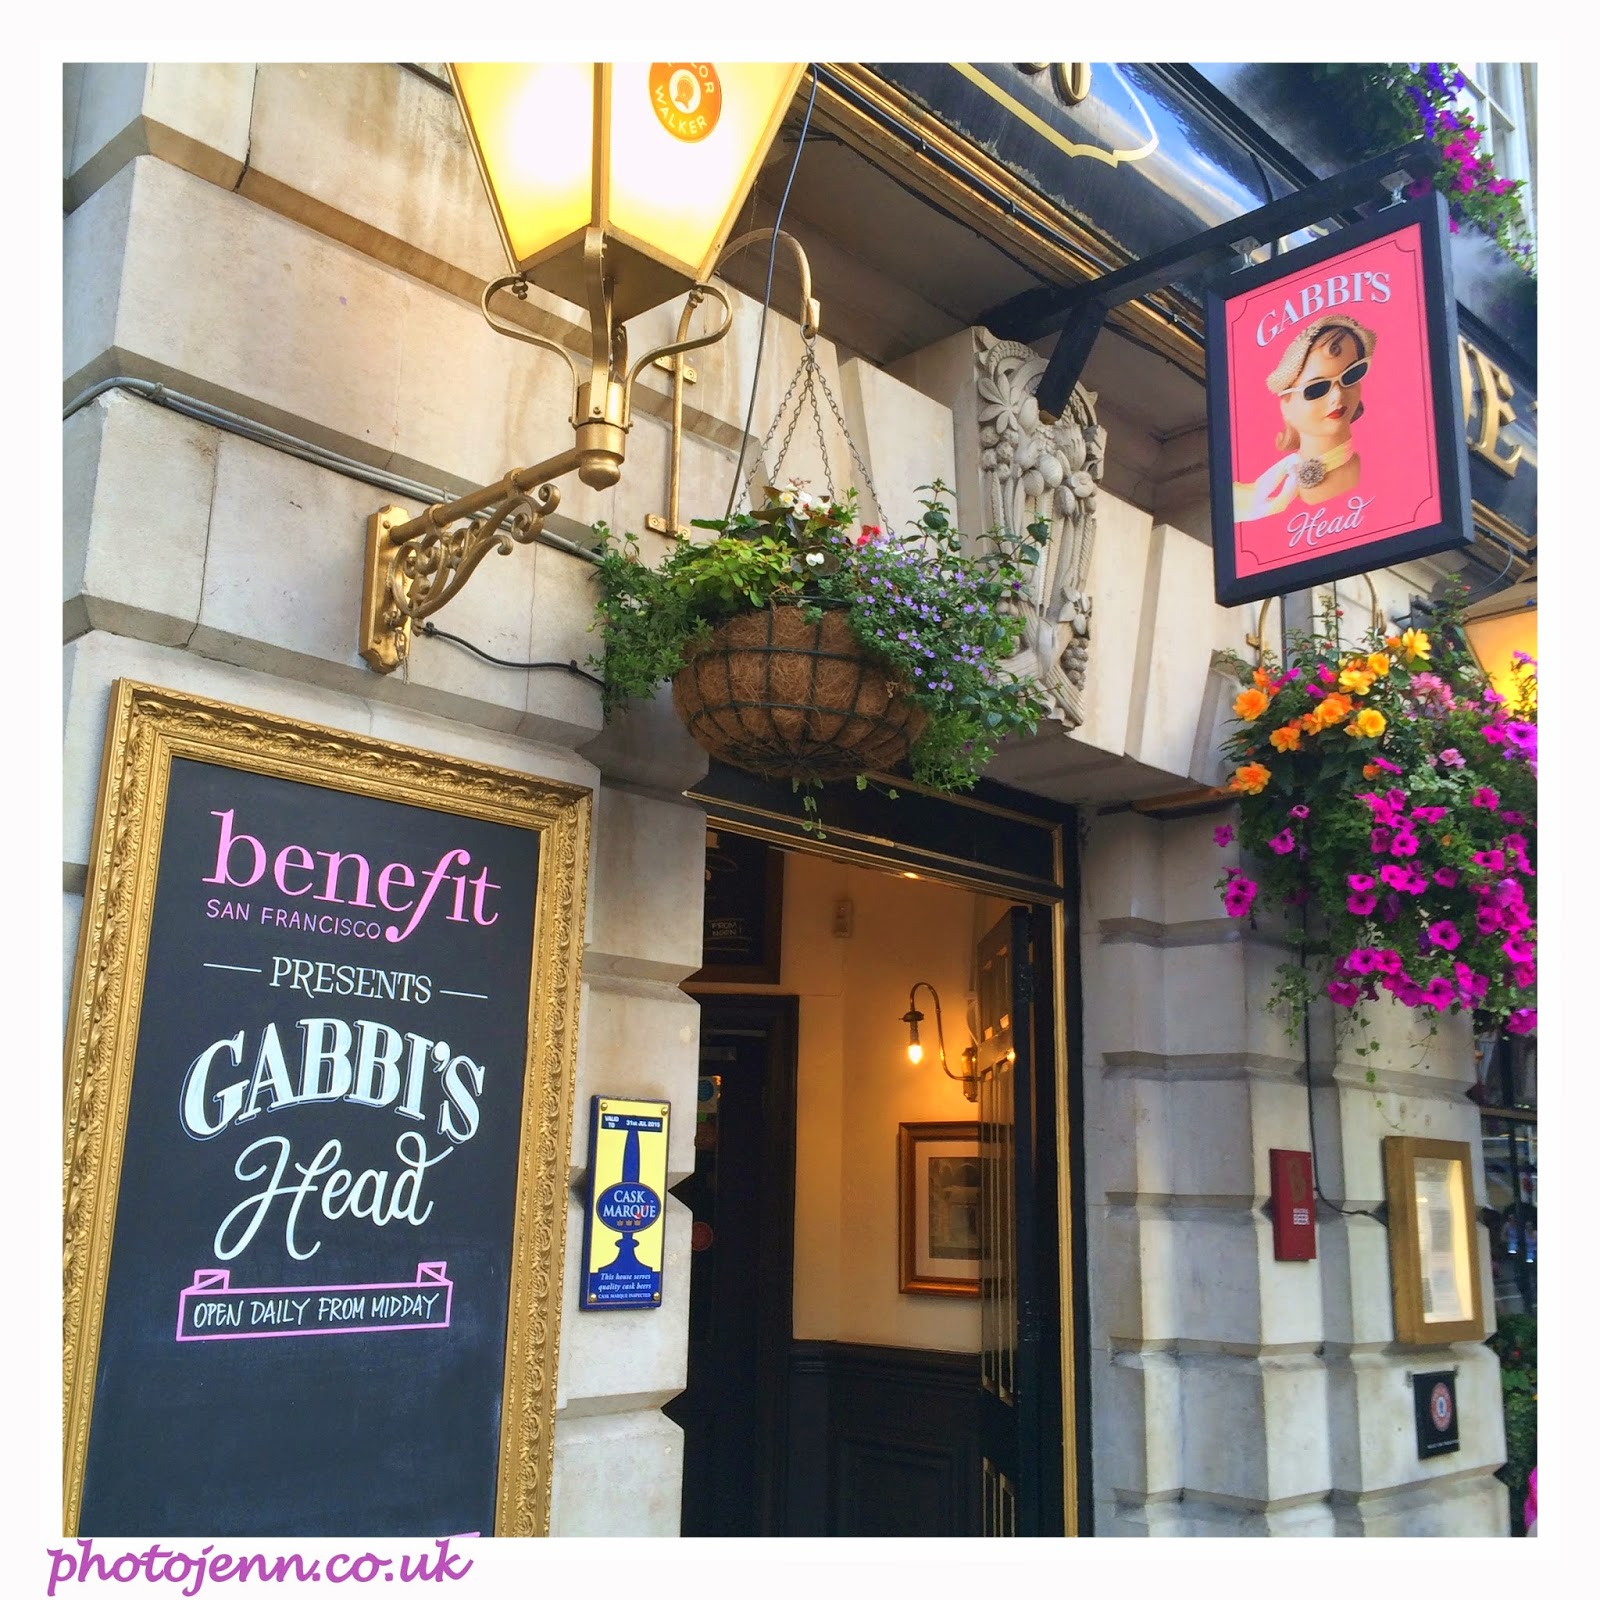 gabbis-head-london-reveiw